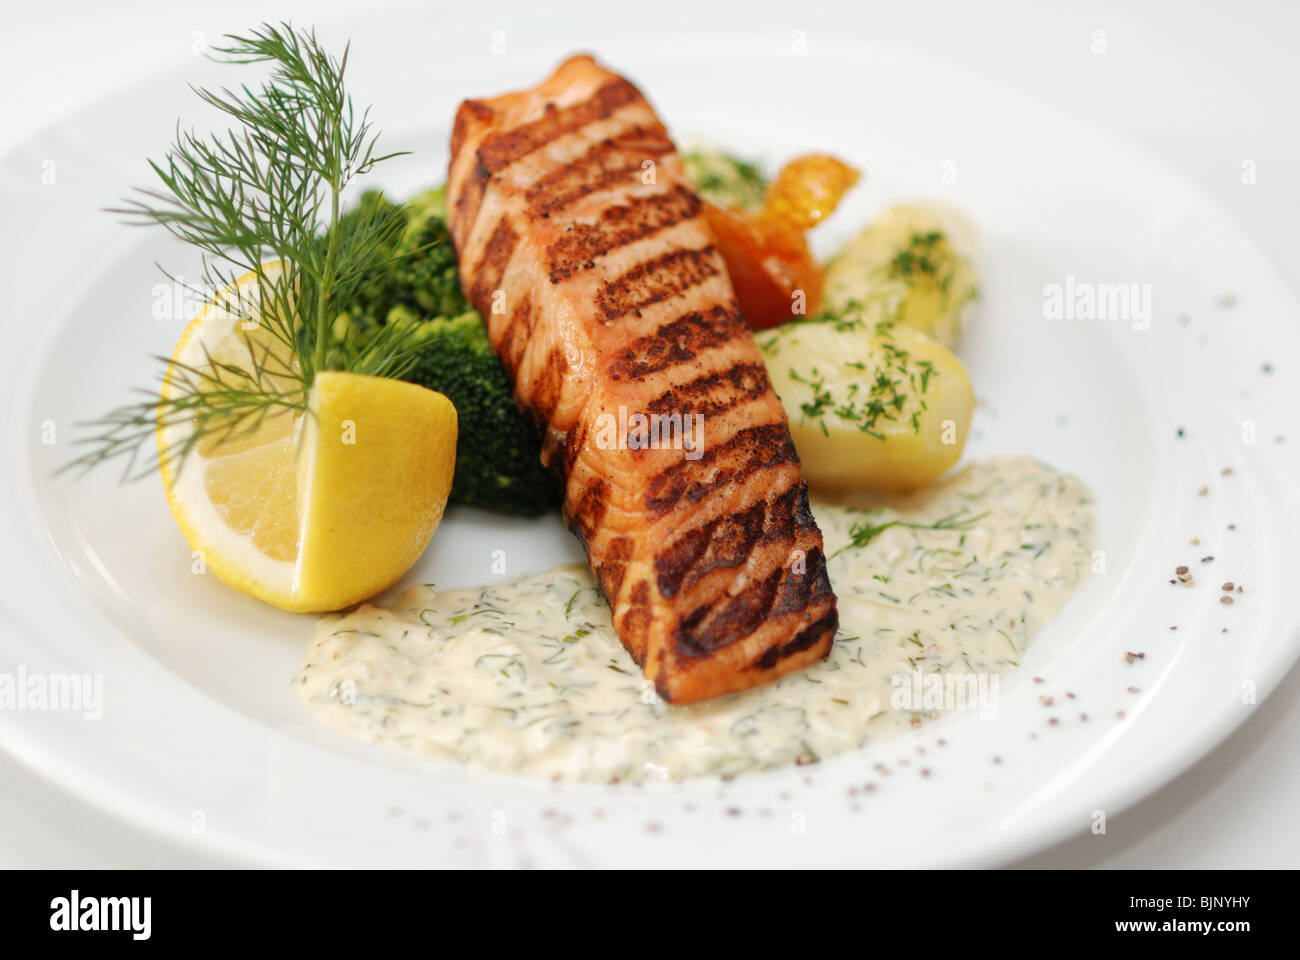 Grilled Salmon Served In Restaurant Stock Photo 28756839